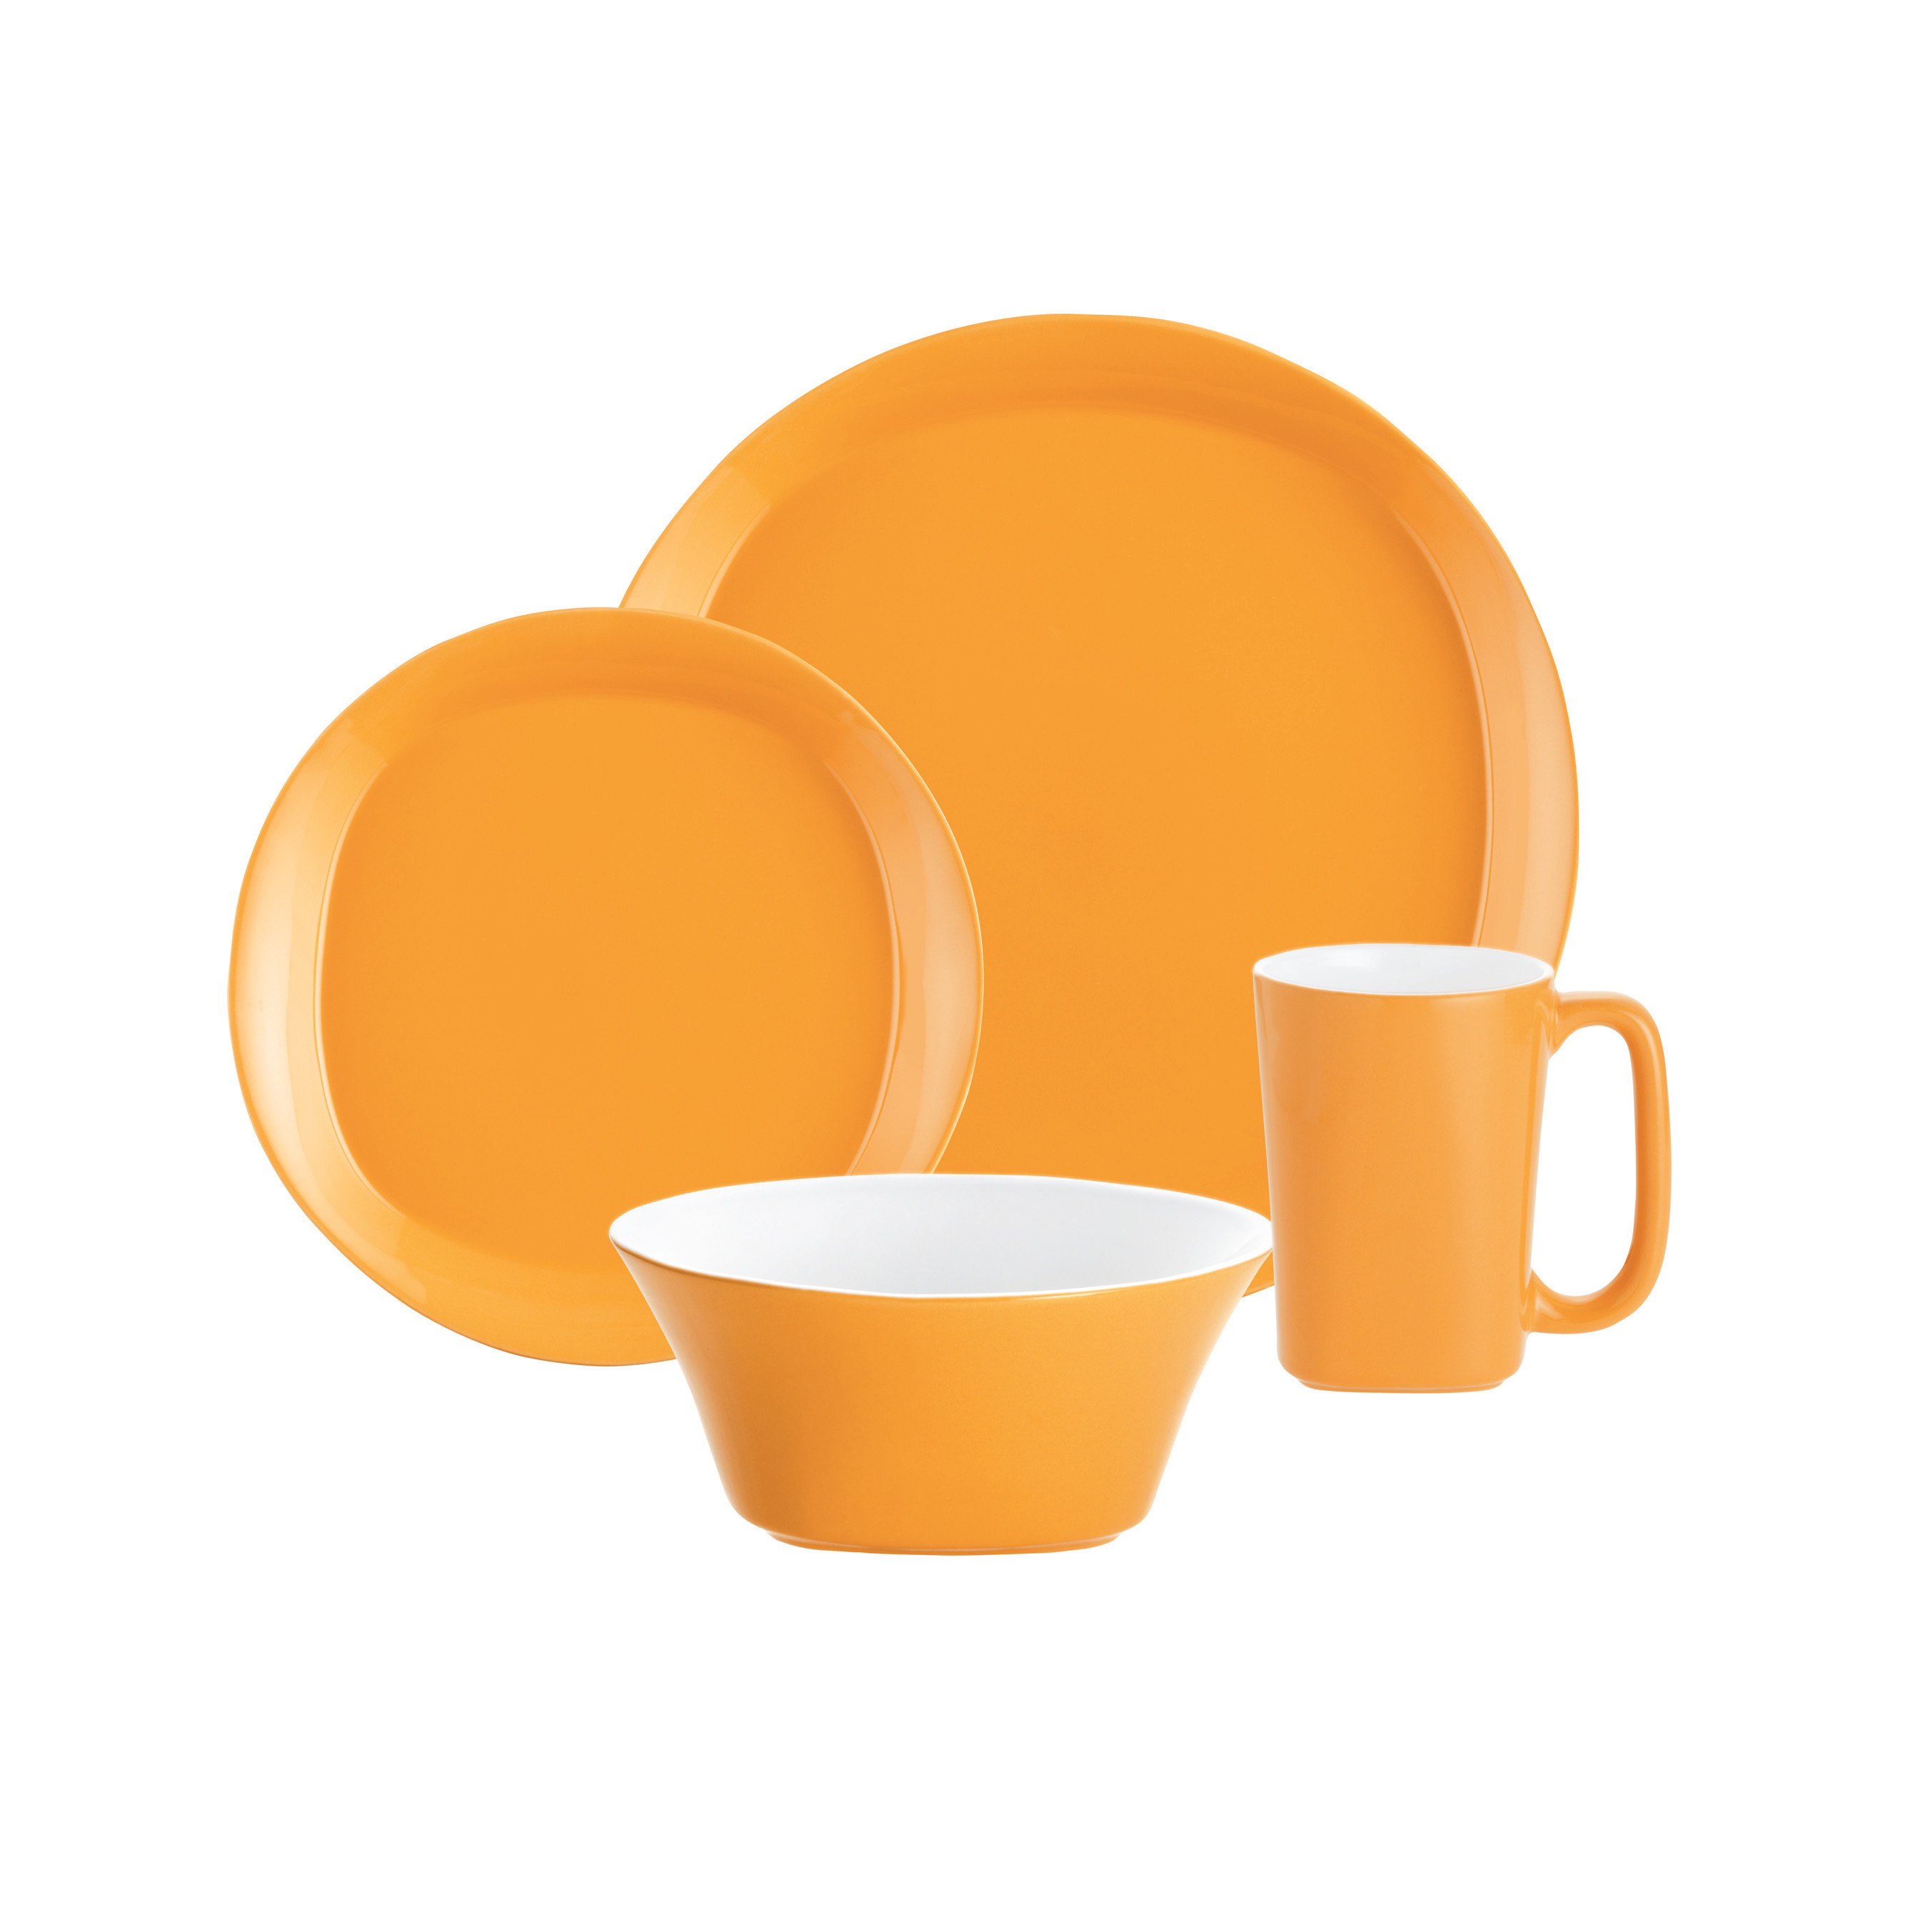 Meyer Corporation Rachael Ray Dinnerware Round and Square 4 - Piece Stoneware Dinnerware Set, Yellow